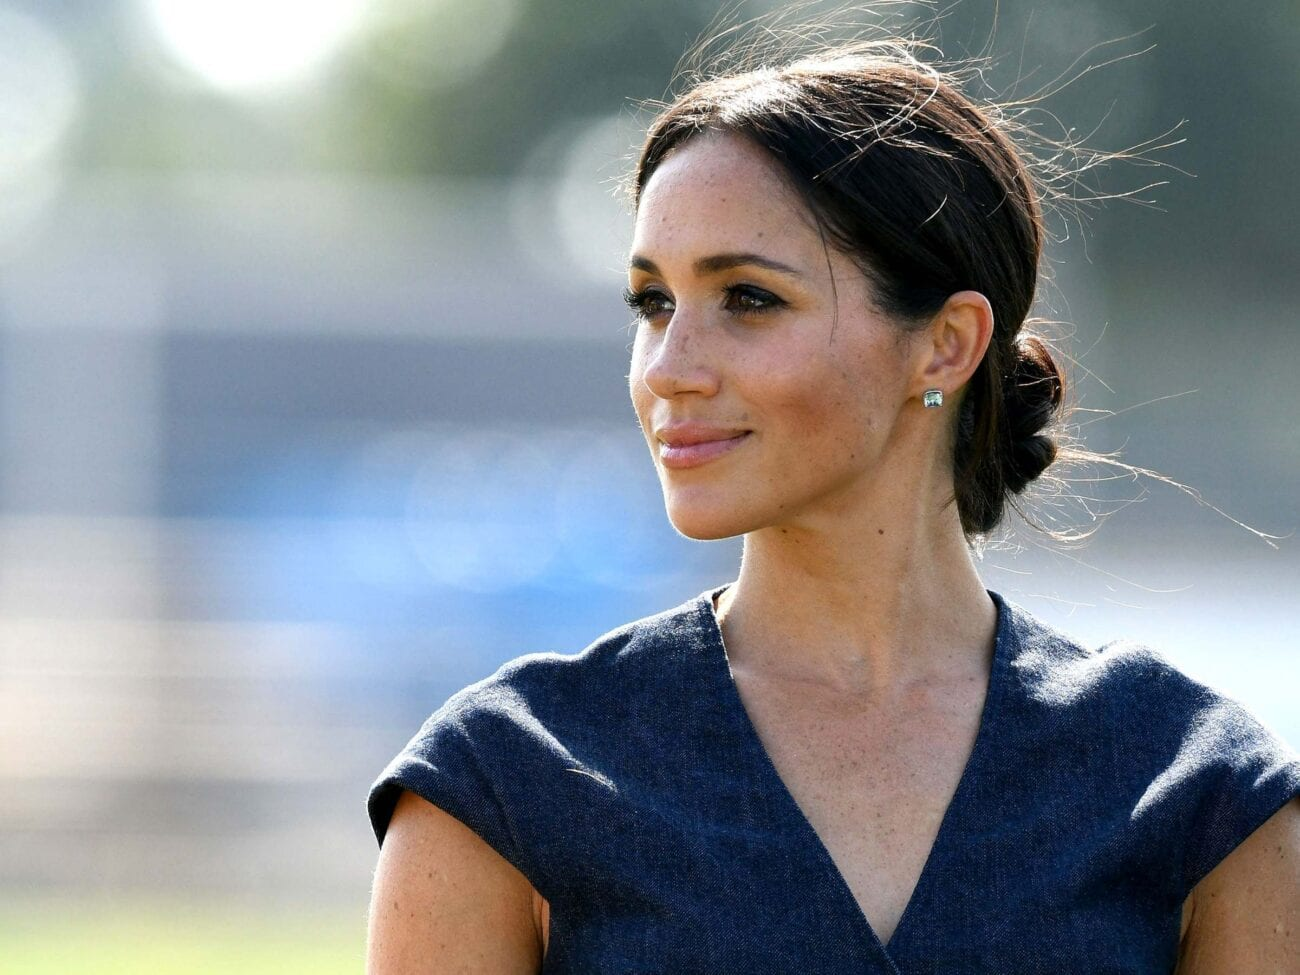 Did Meghan Markle feed the press information about Prince Harry? Delve into the lawsuit surrounding the new book 'Finding Freedom.'